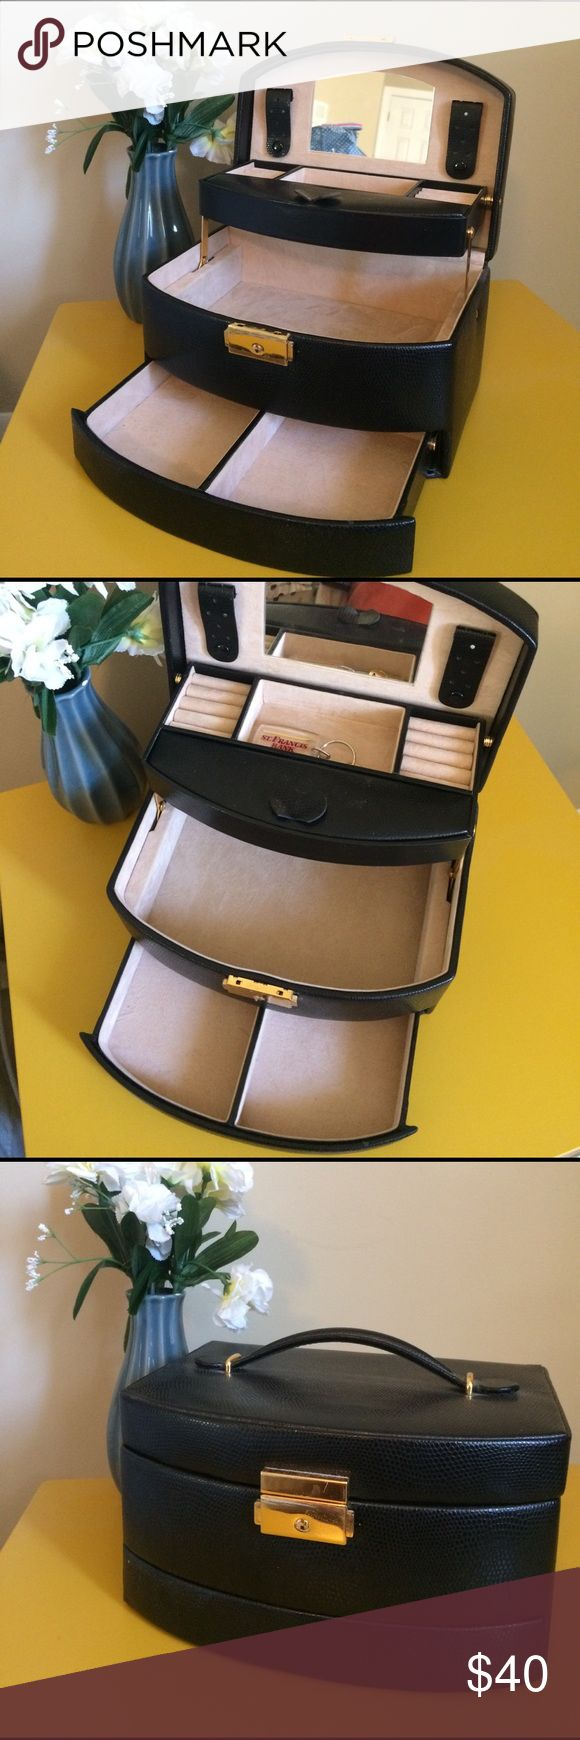 Locking jewelry box Black three tiered jewelry box. Comes with key! Holds a lot! Great condition! Jewelry